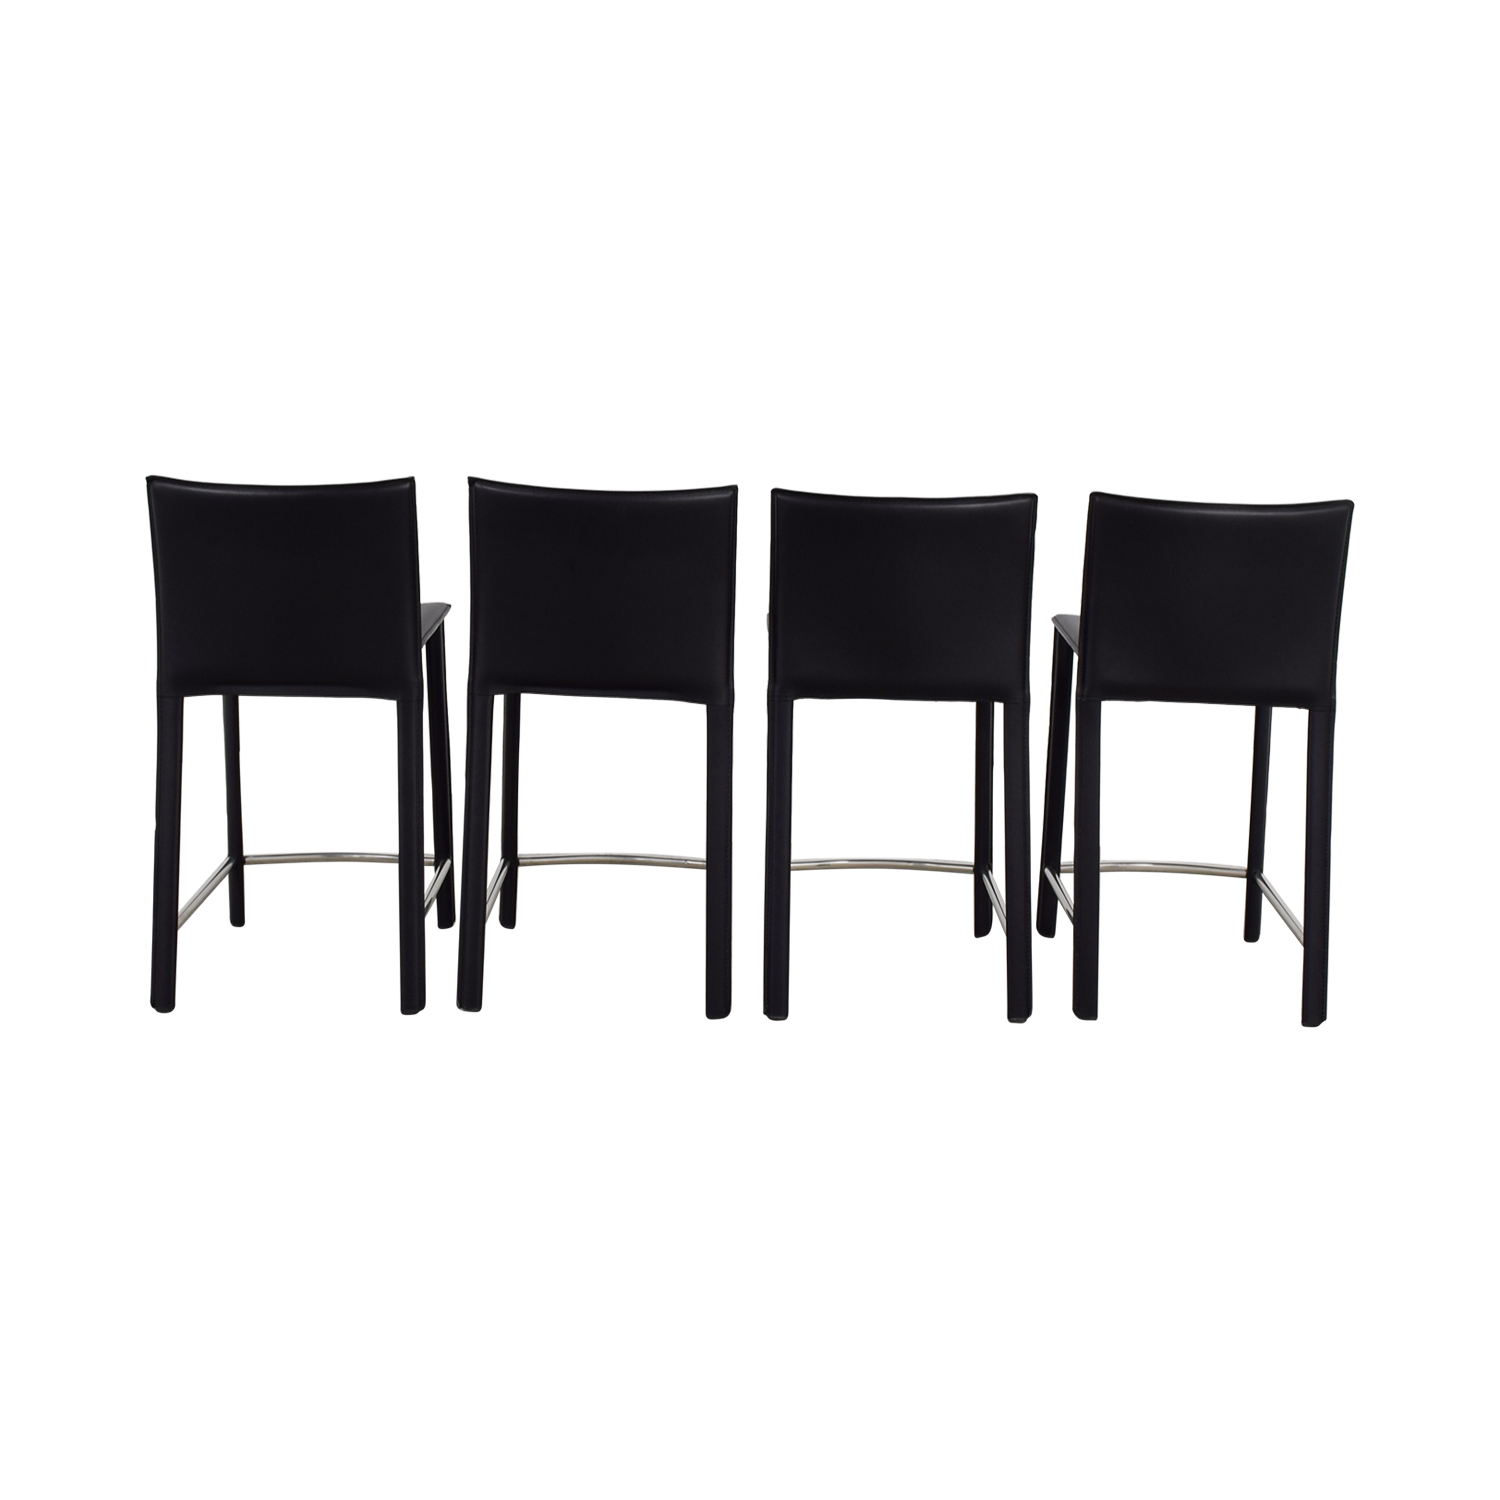 Aurelle Home Classic Black Italian Leather Counter Stools / Stools